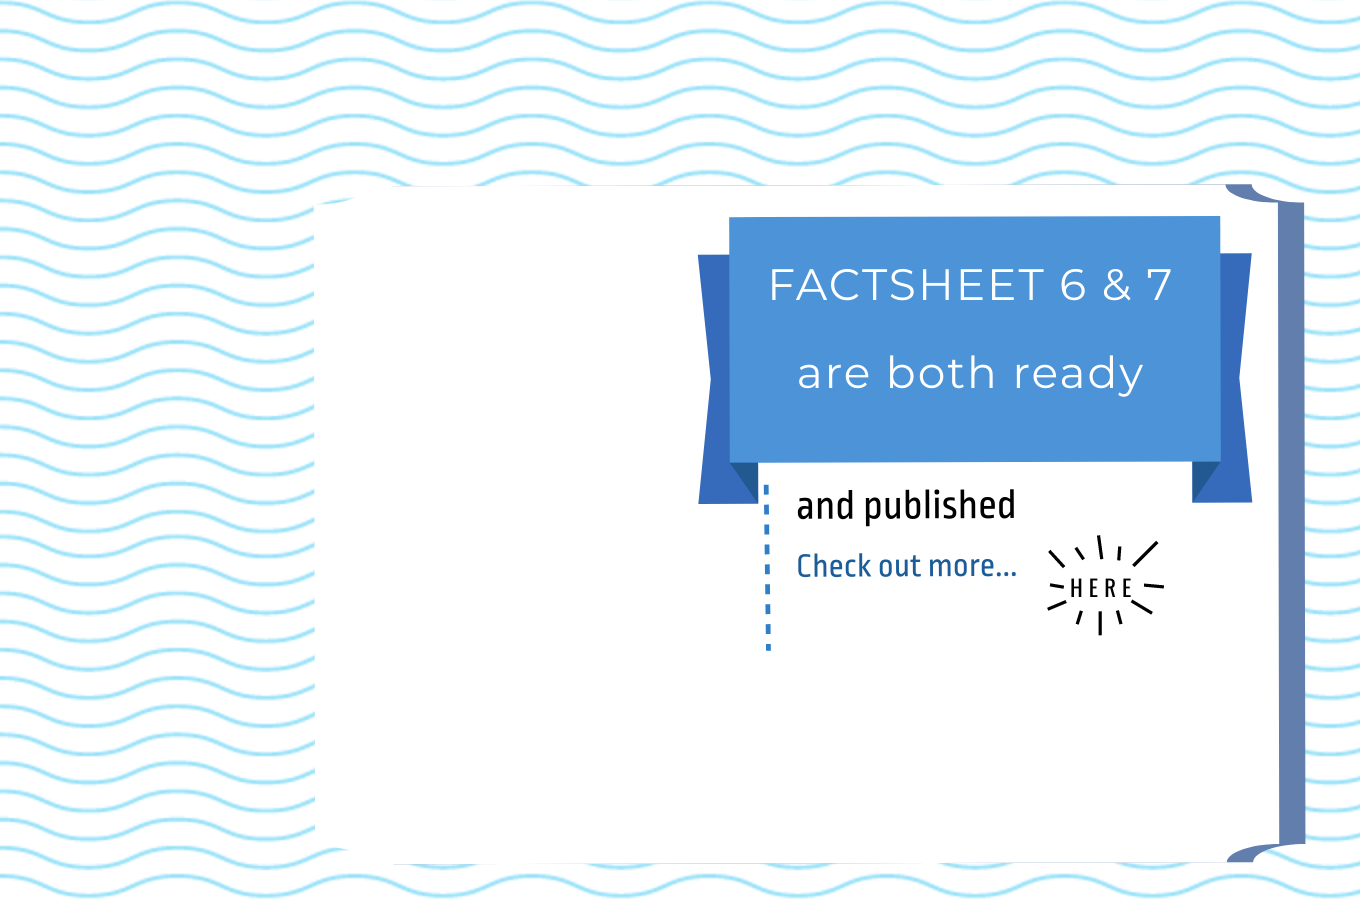 Factsheet 6 & 7: ready and published